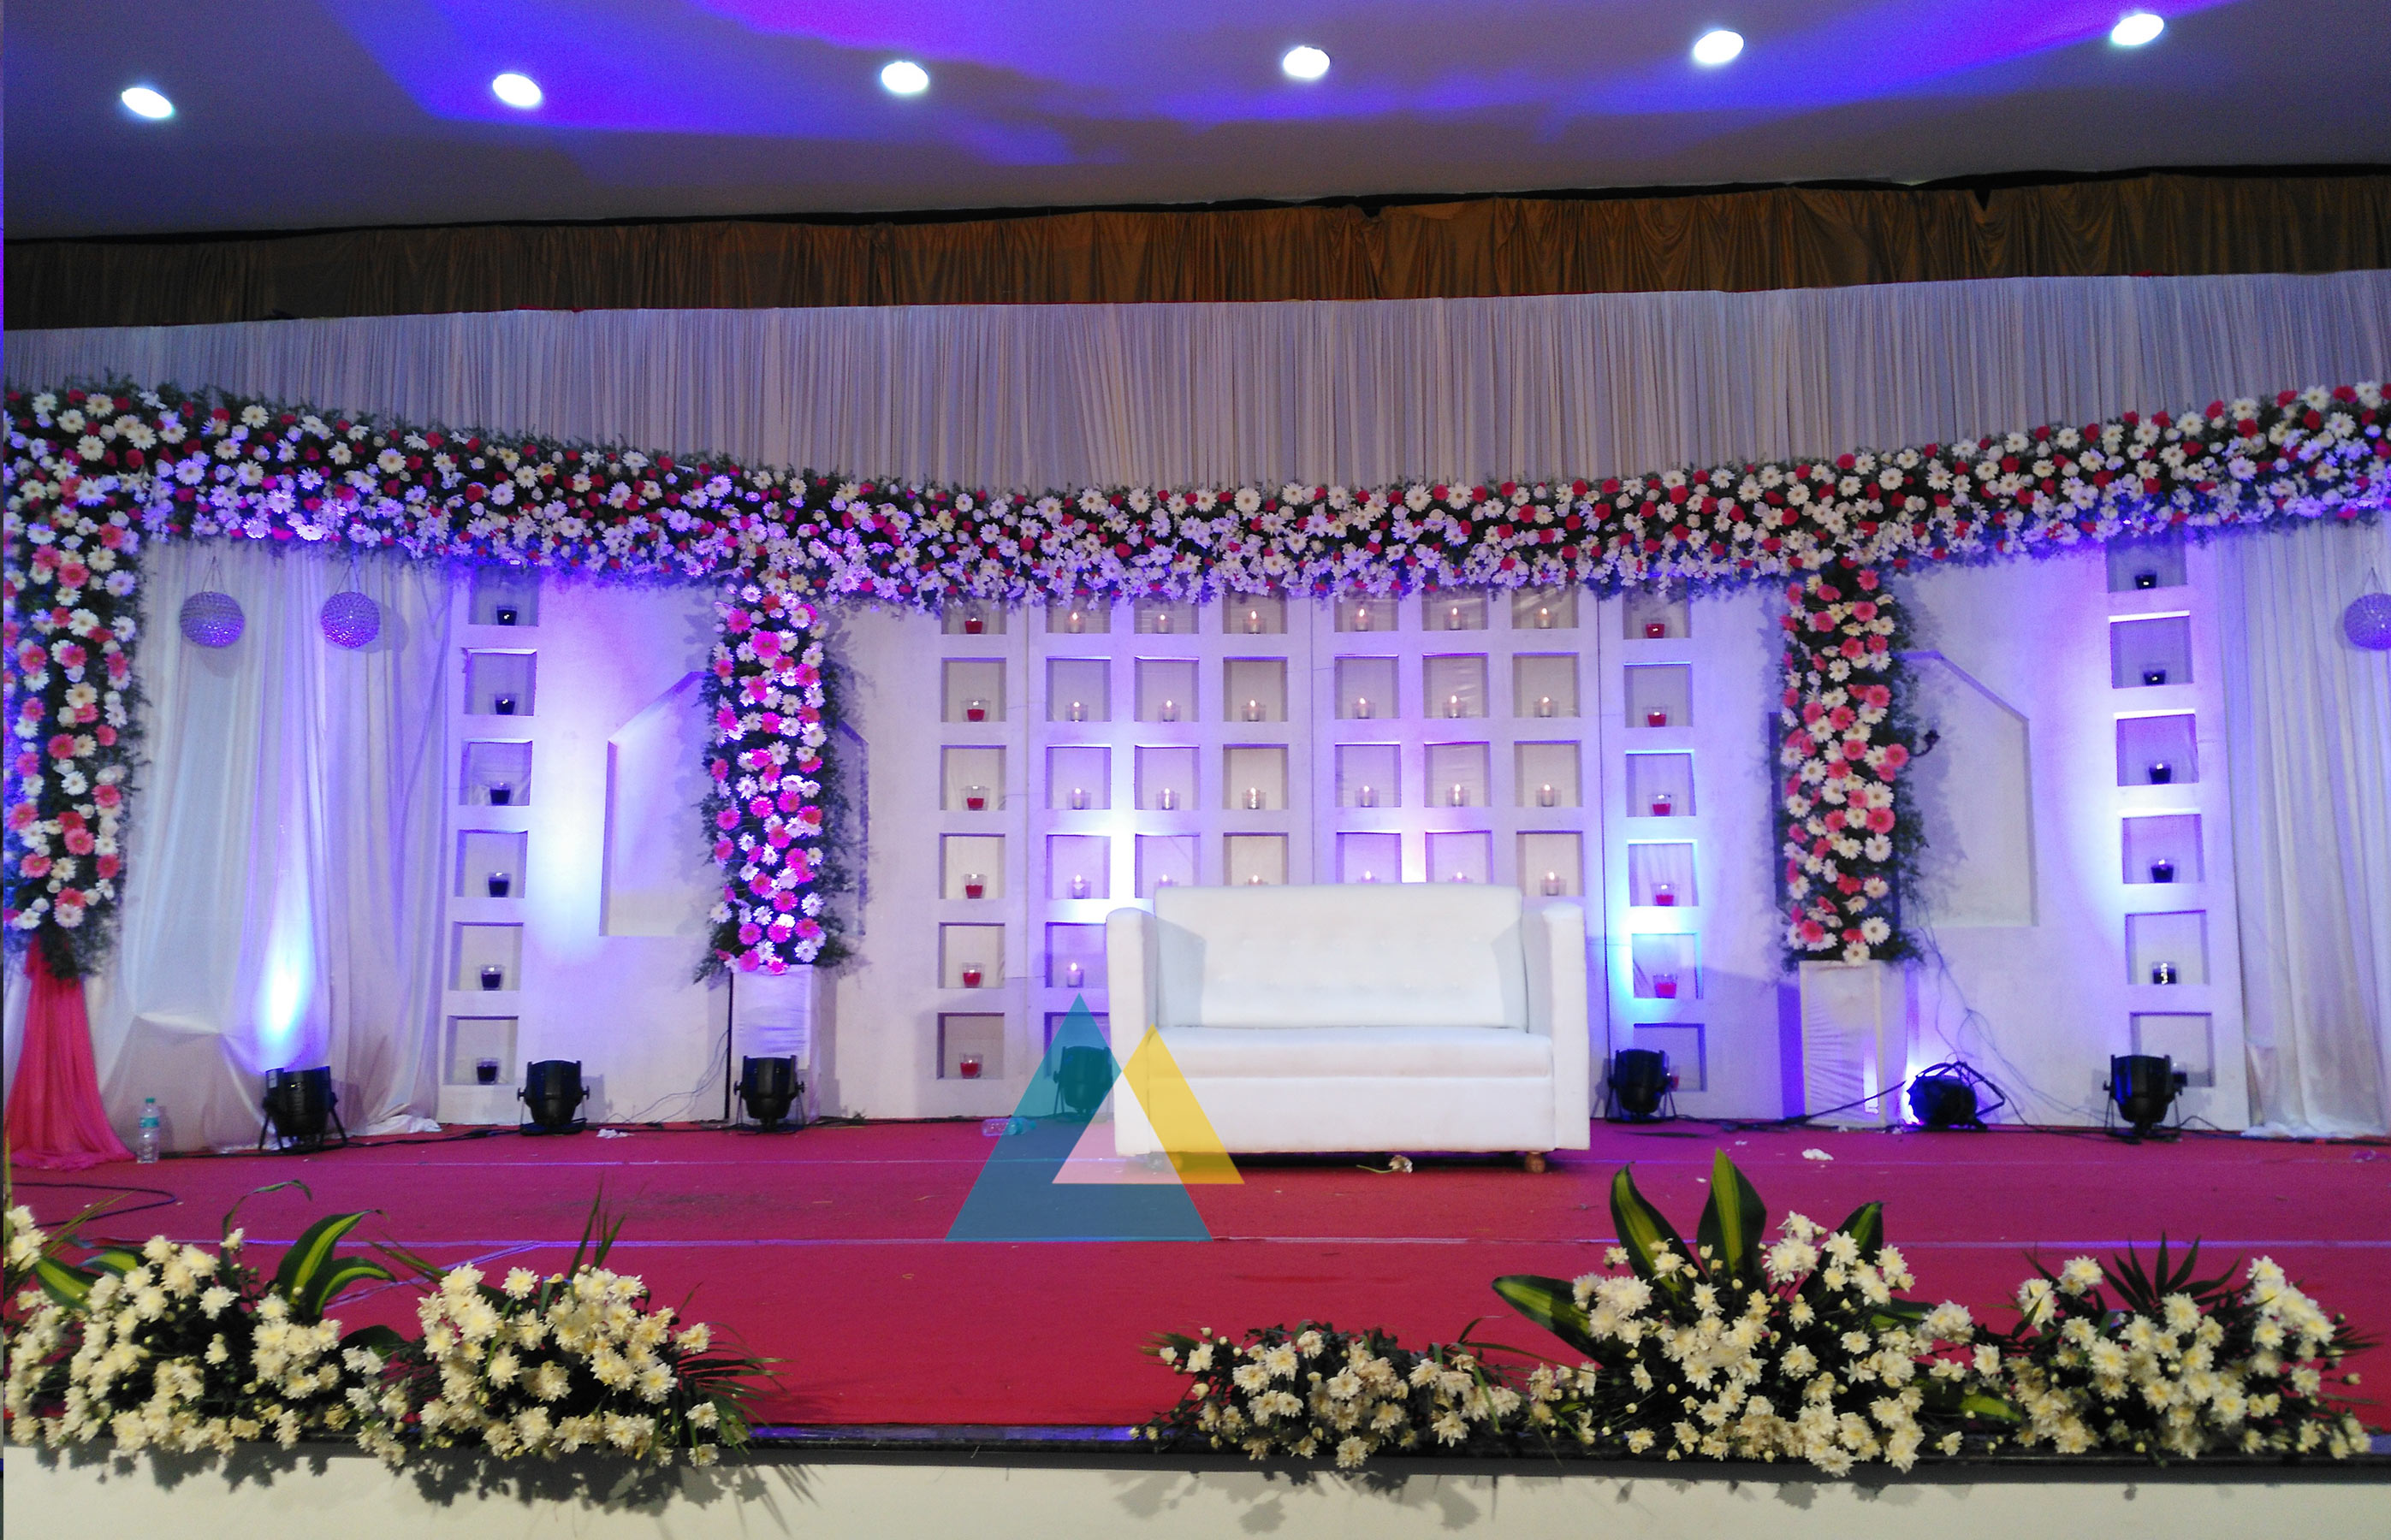 Wedding reception decoration done at bkn auditorium for Decoration ideas